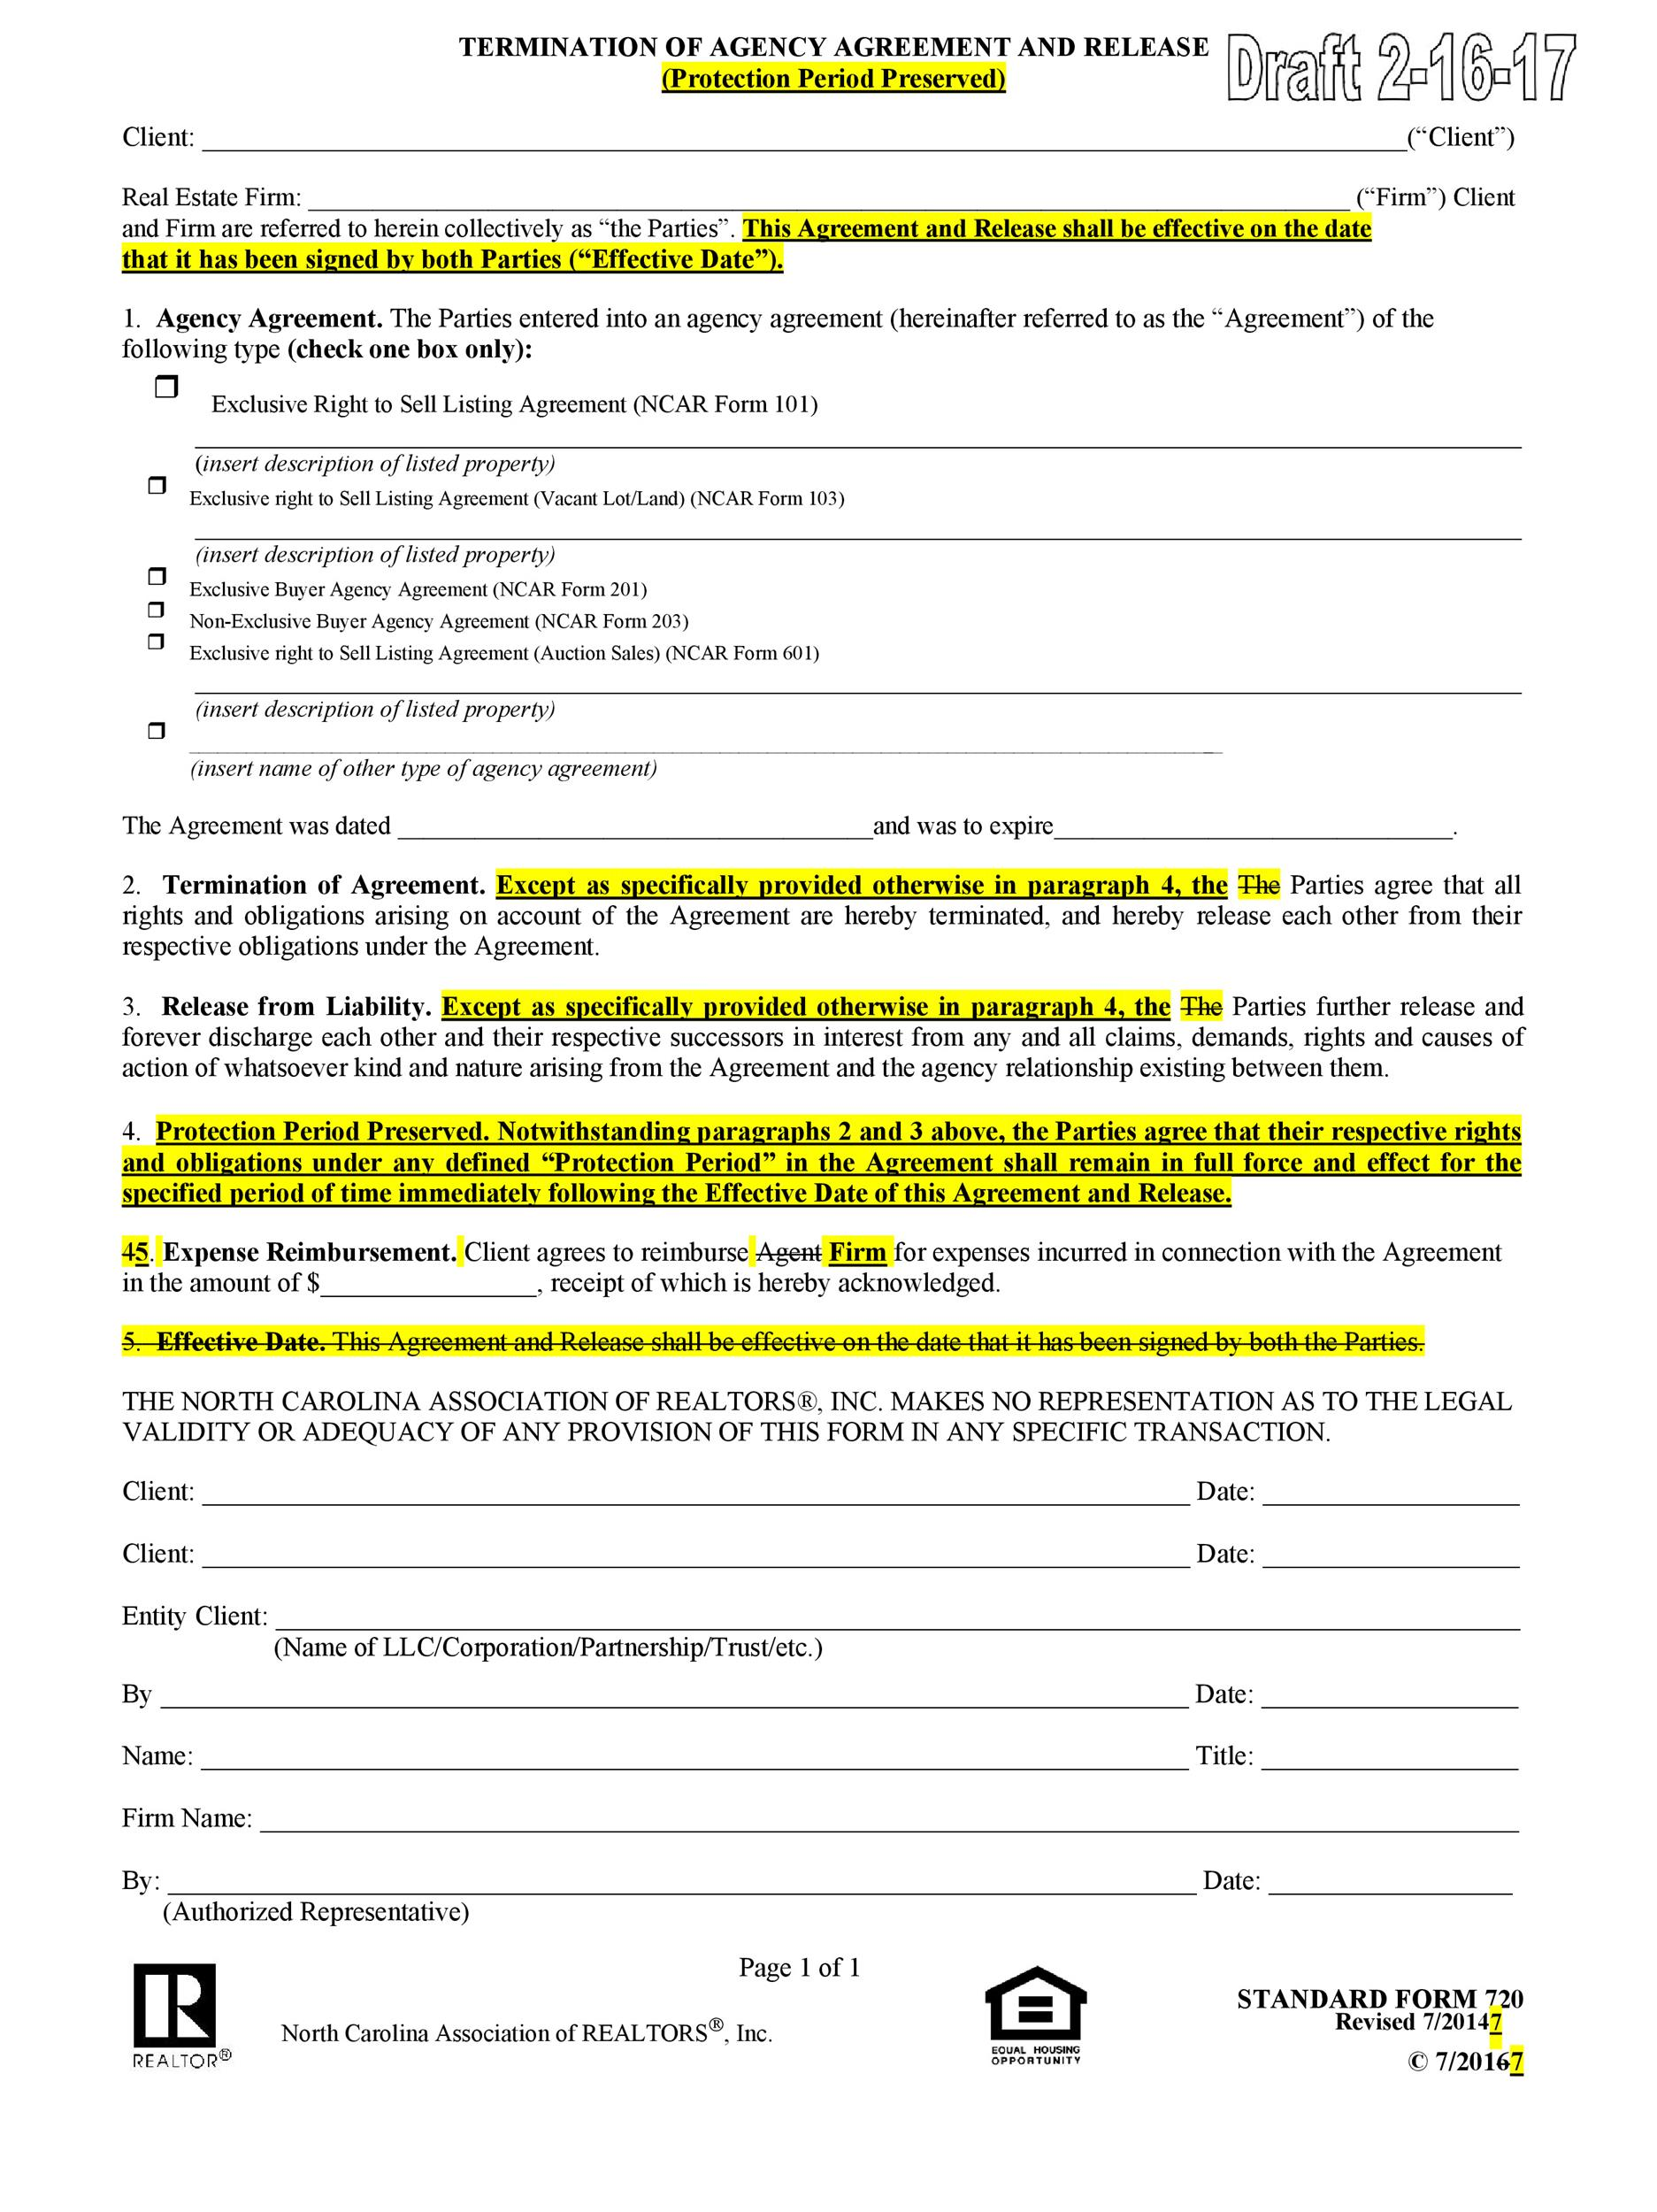 50 Free Agency Agreement Templates (MS Word)